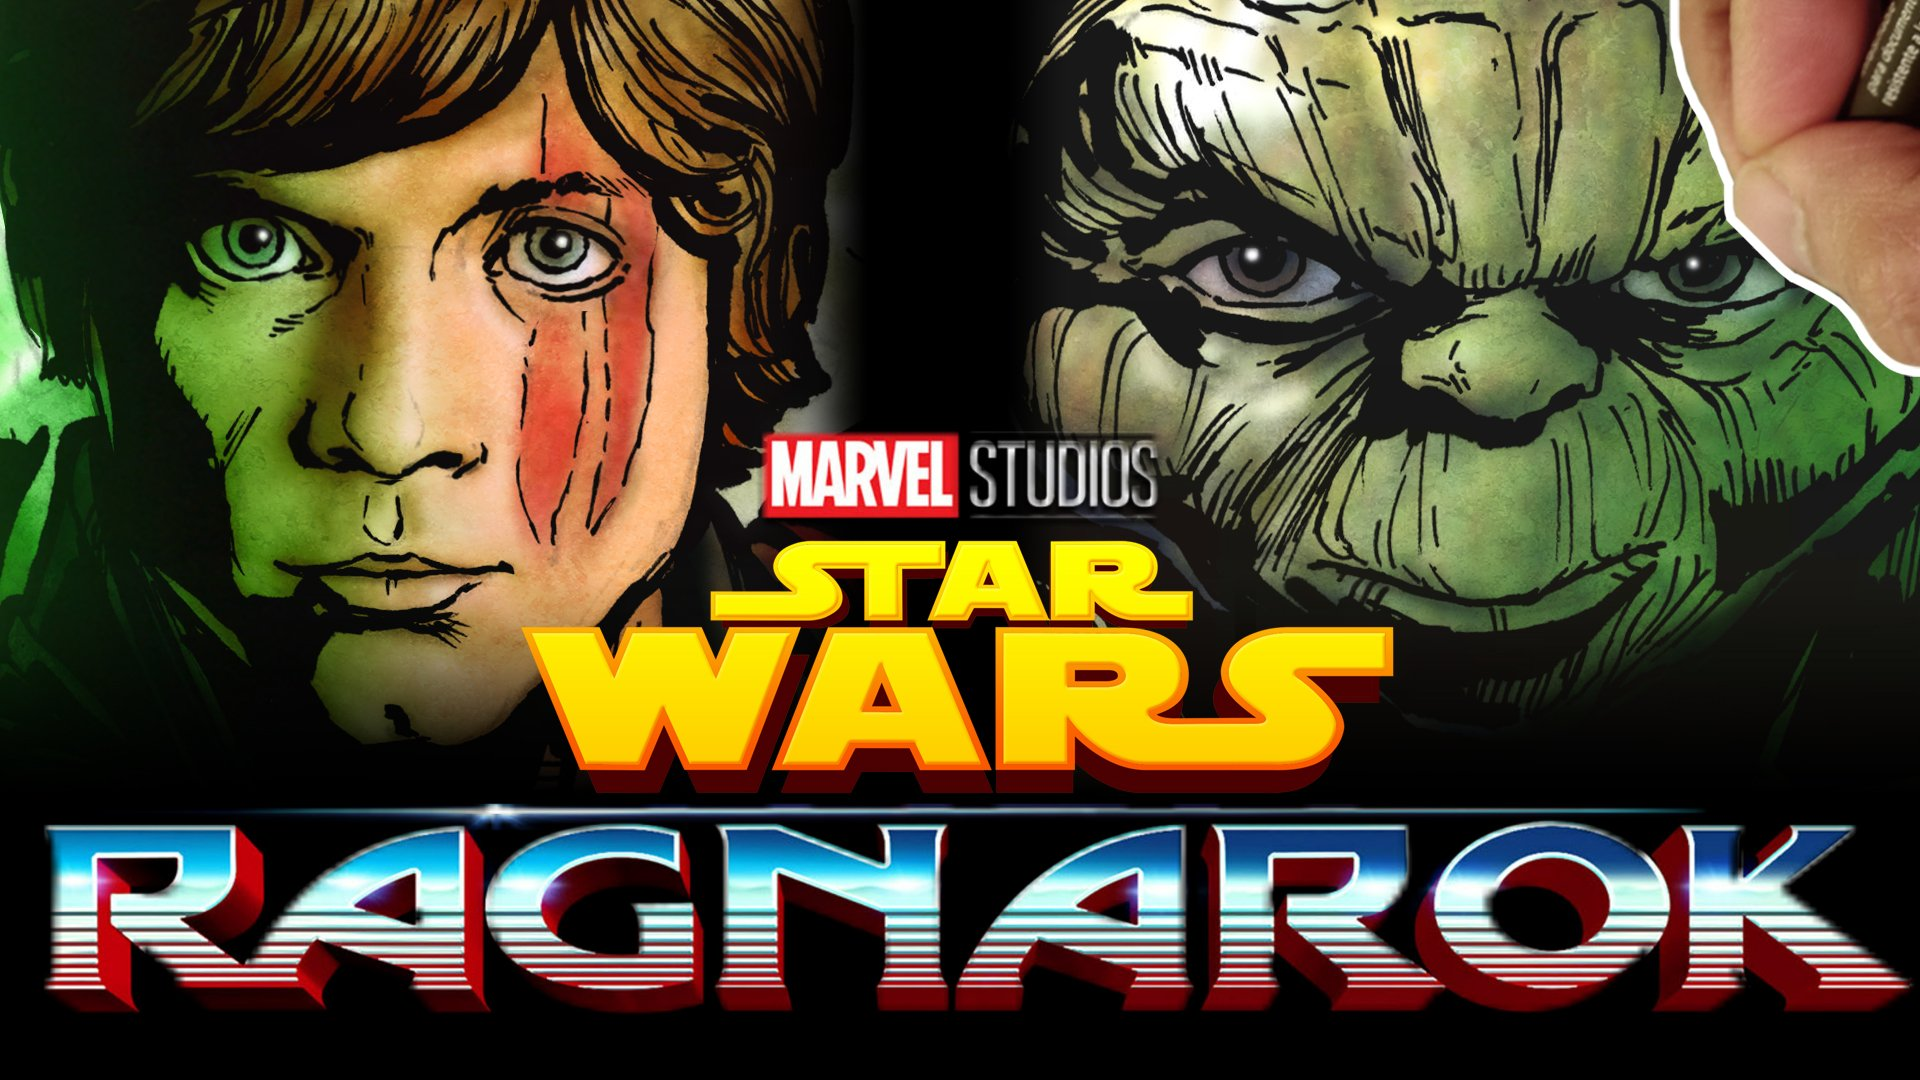 James Raiz On Twitter Yoda As Hulk Hamillhimself As Thor Mashing Up Starwars With Thorragnarok Watch Me Draw The Full Image Here Https T Co Oihd7i18fs Https T Co Kij9esweg6